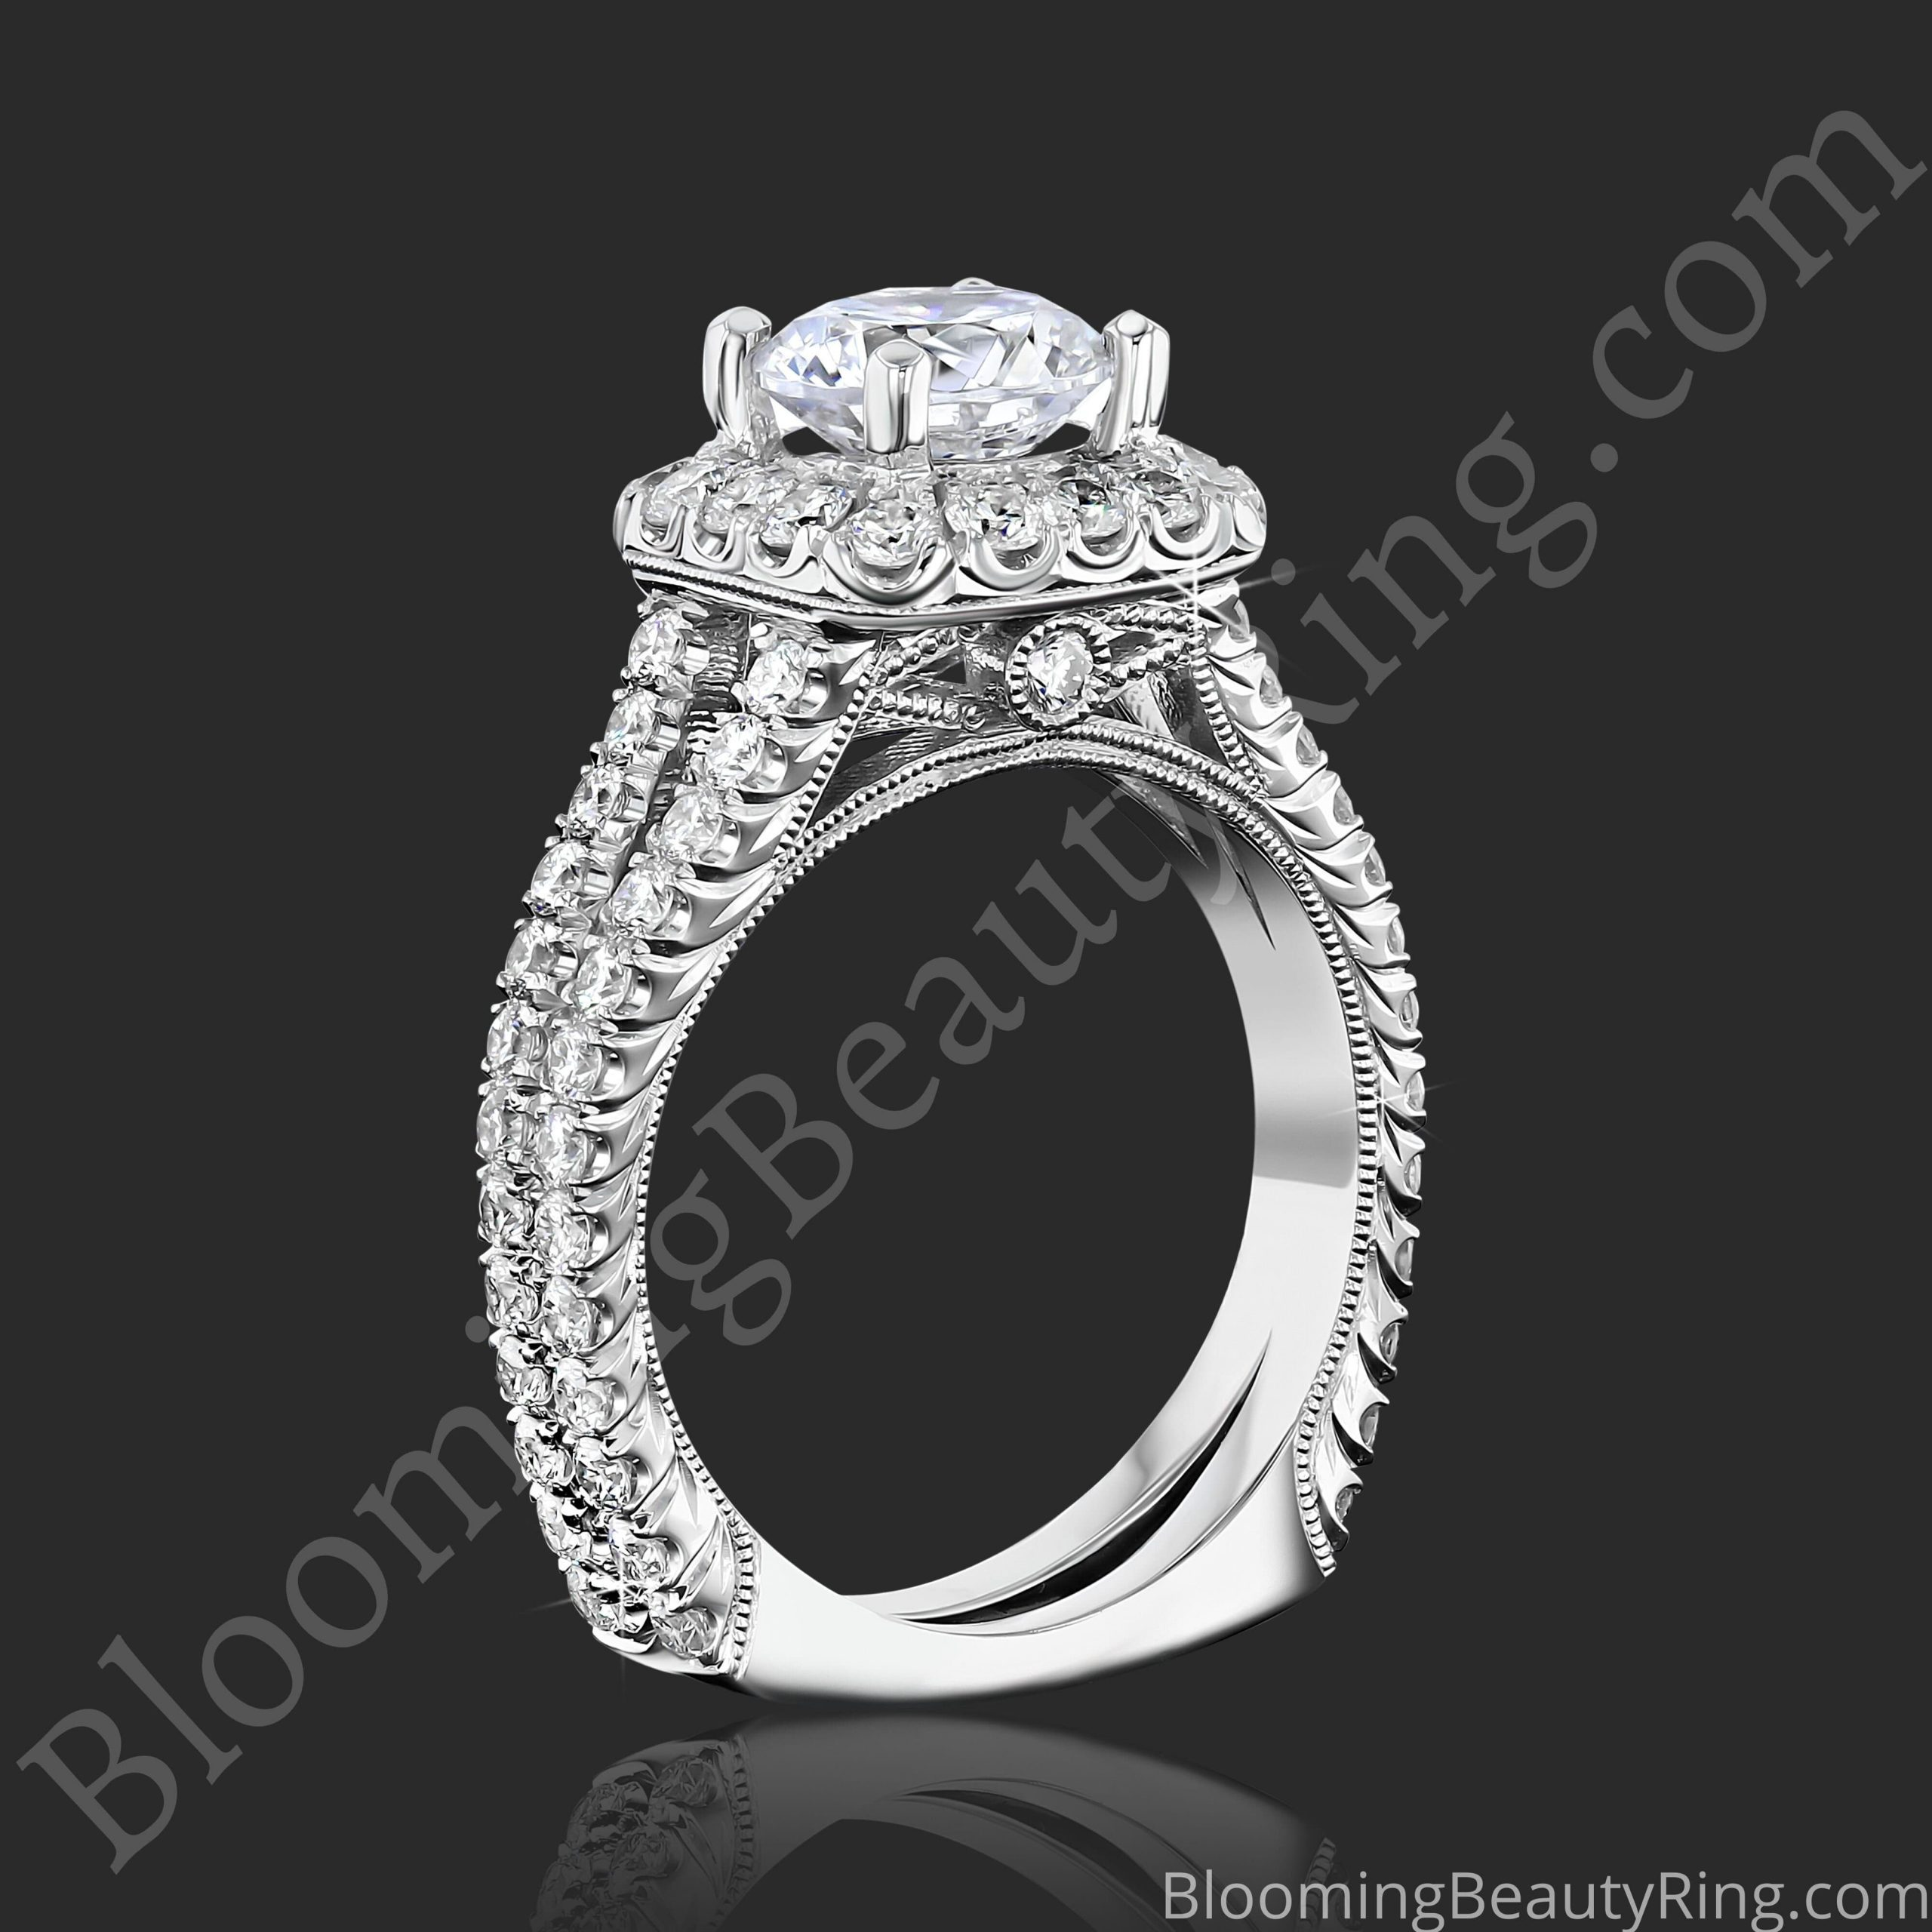 Breathtaking 1.60 ctw Halo Diamond Engagement Ring Handmade In The USA To Perfection bbr733